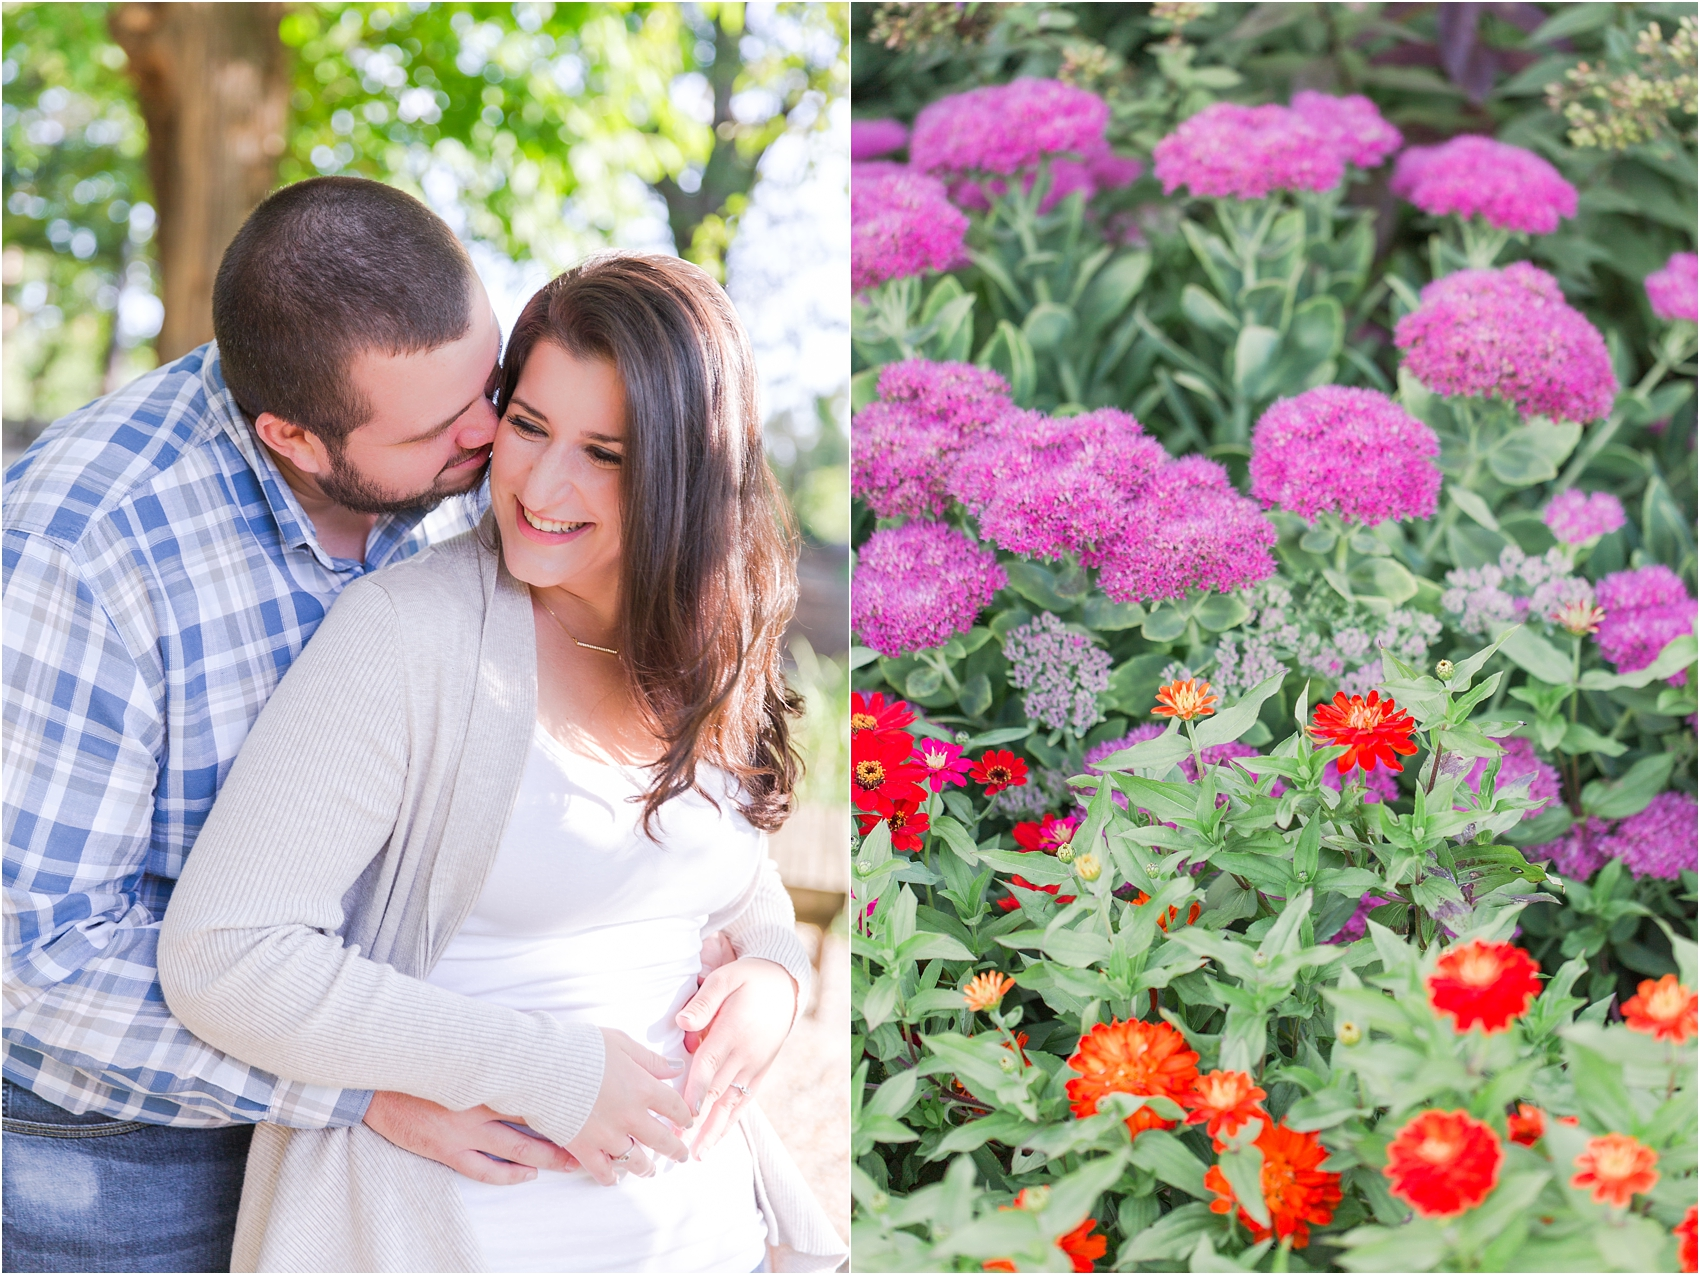 candid-romantic-summer-engagement-photos-at-hidden-lake-gardens-and-black-fire-winery-in-tipton-mi-by-courtney-carolyn-photography_0030.jpg